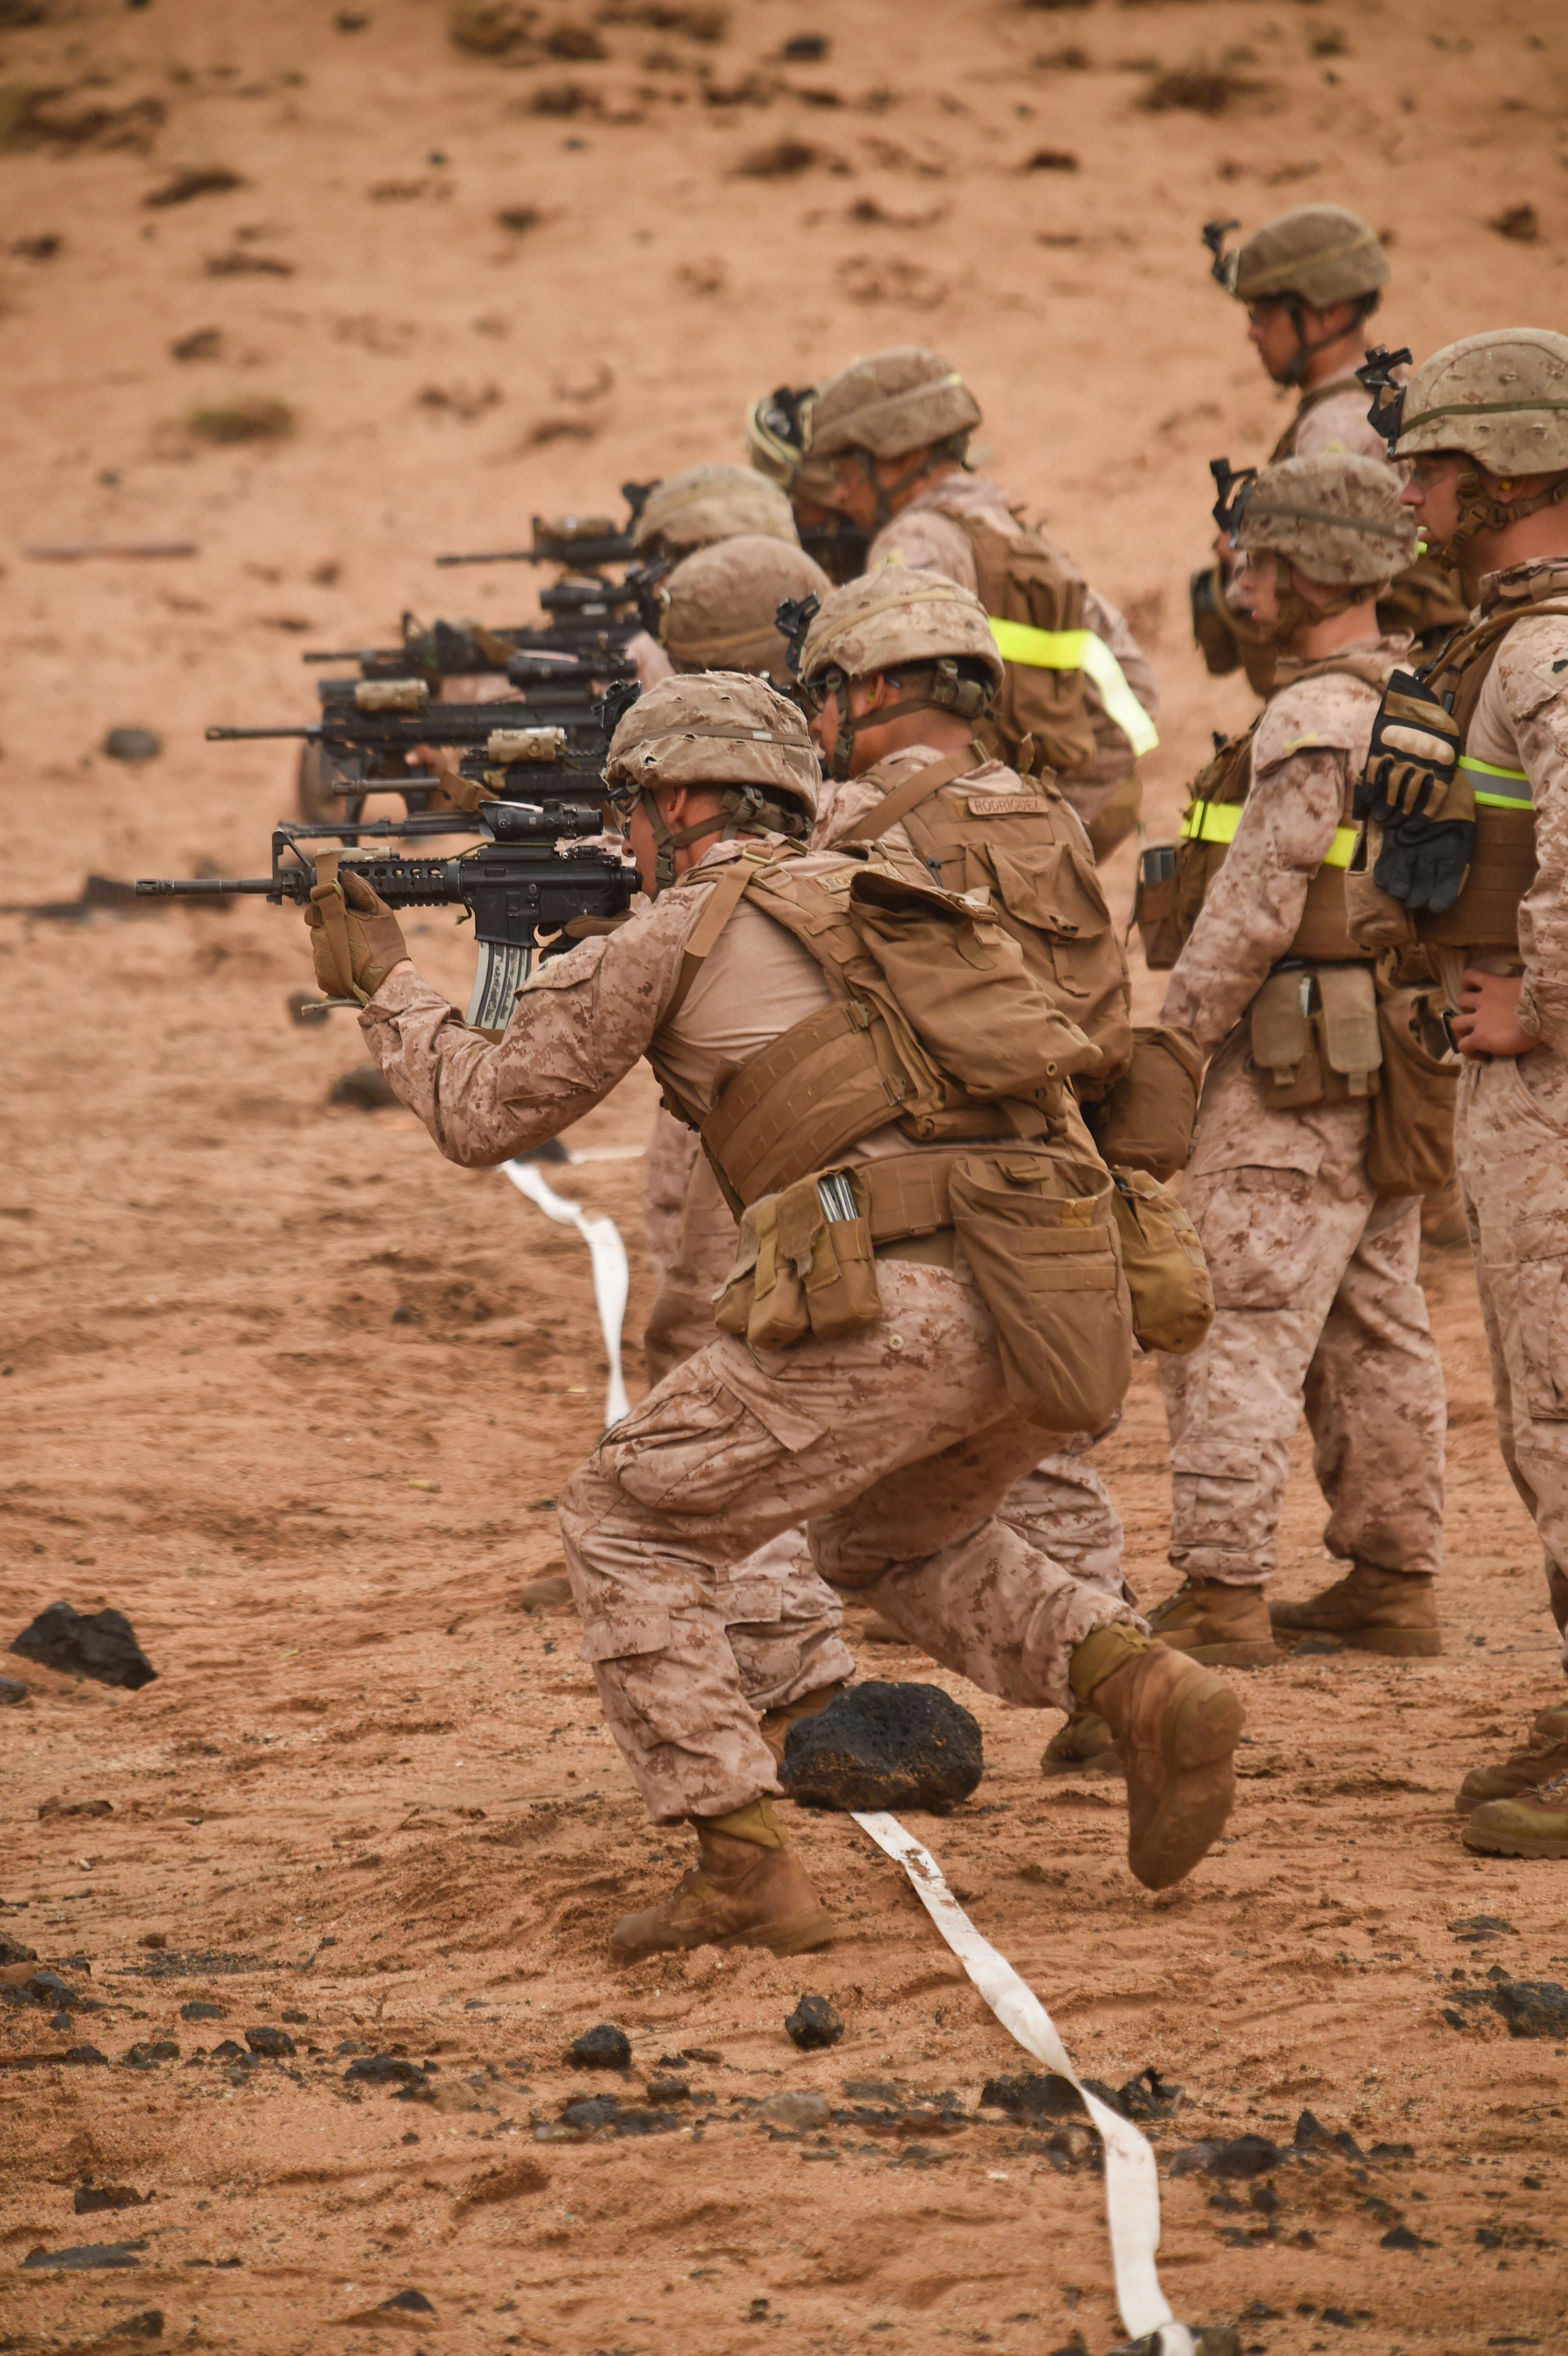 U.S. Marines with Alpha Company, 1st Battalion, 11th Marine Expeditionary Unit (MEU), move downrange during a Combat Marksmanship Program shoot, Feb. 14, 2017, at Arta Beach in Djibouti. The Marines worked on engaging a target while moving and under physical stress. A MEU is a quick response force, which consists of Sailors and Marines on standby for immediate crisis response across the globe. (U.S. Air National Guard photo by Staff Sgt. Penny Snoozy)